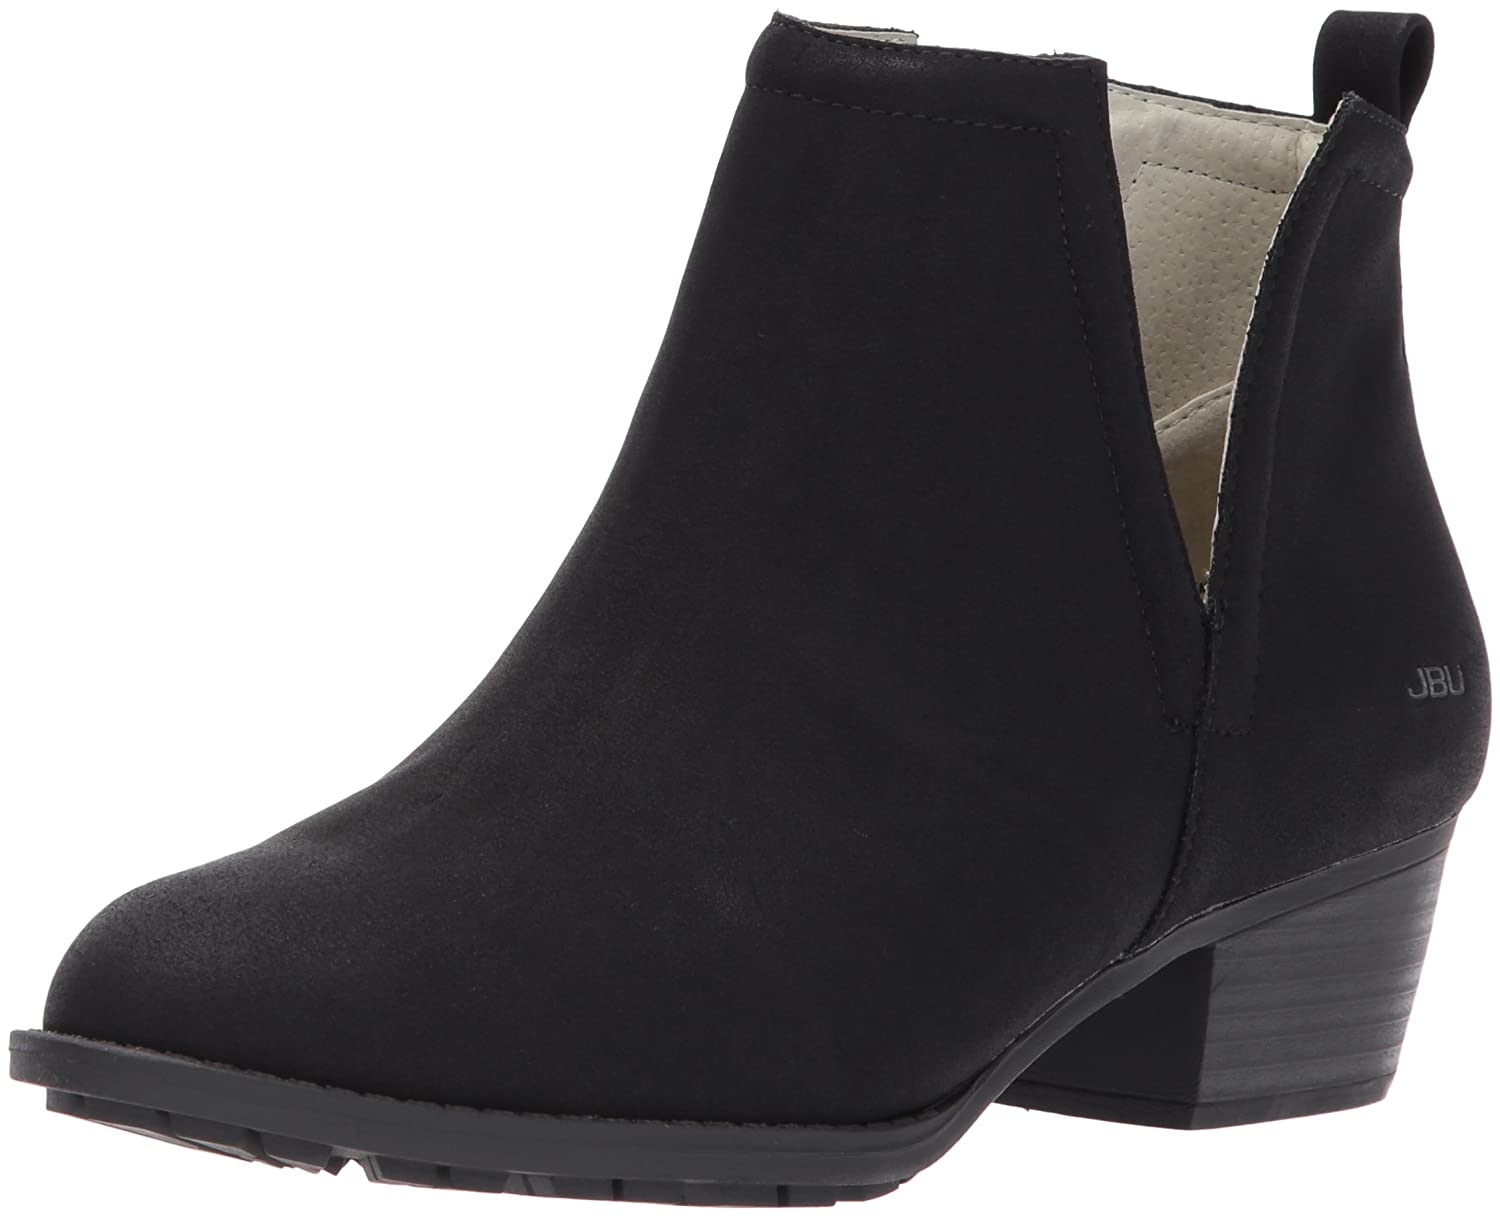 JBU by Jambu Women's Parker Ankle Bootie B06XKM4GD6 8.5 B(M) US|Black